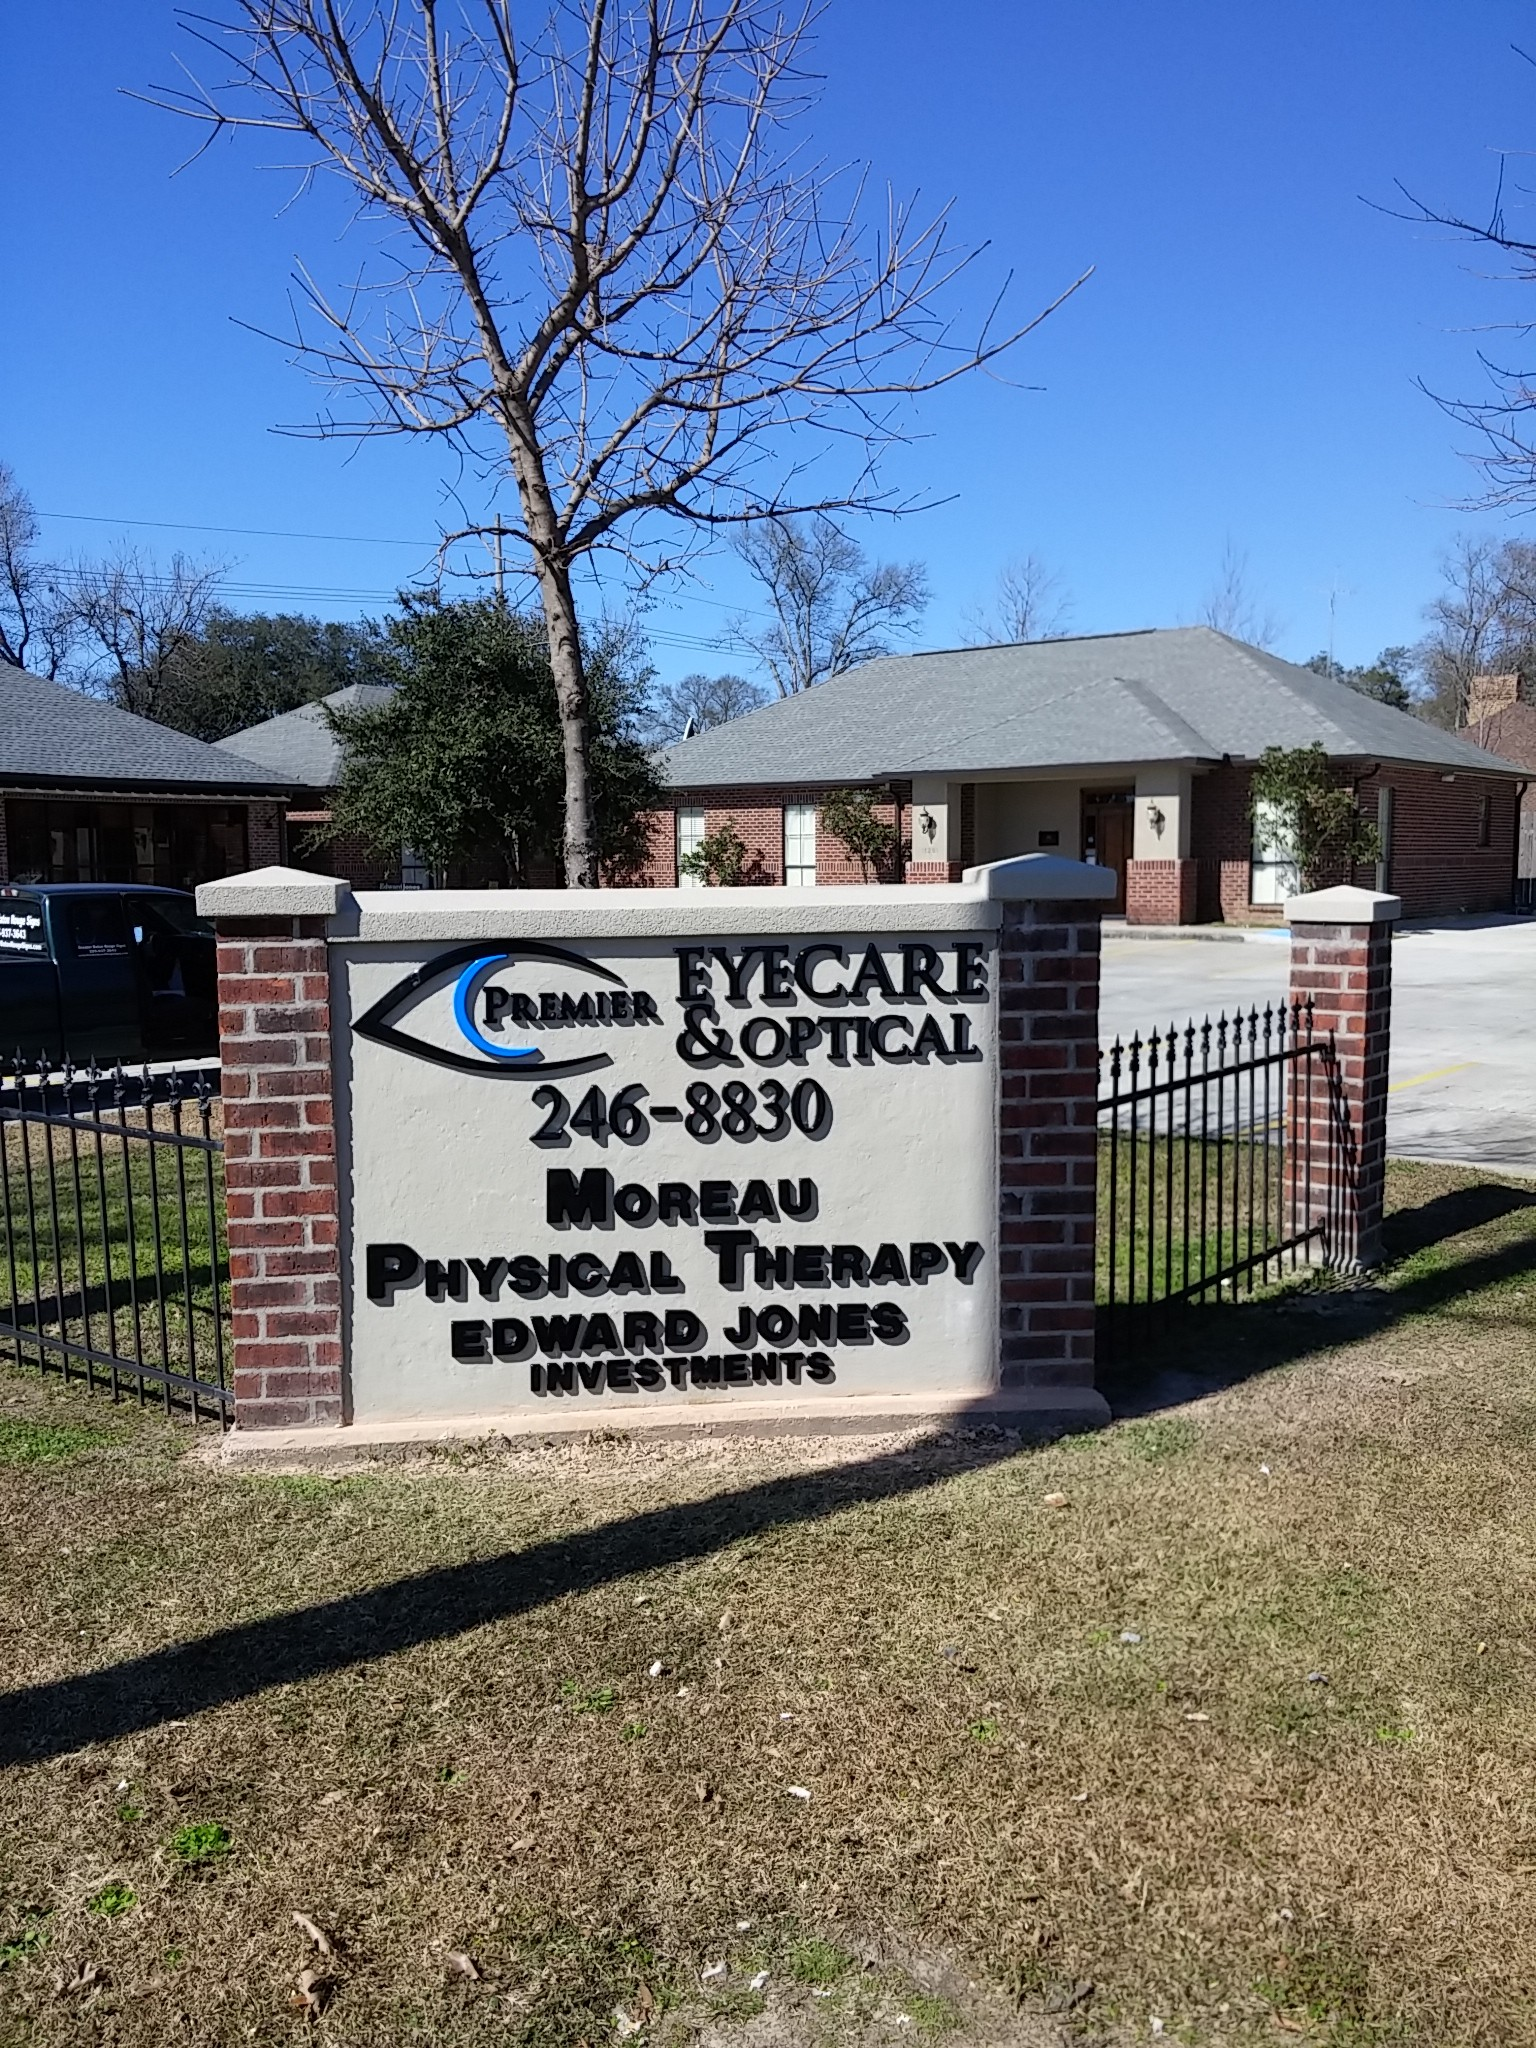 Premier Eye and Optical, Moreau Physical Therapy, Edward Jones Investments Non Lit Letters - Greater Baton Rouge Signs